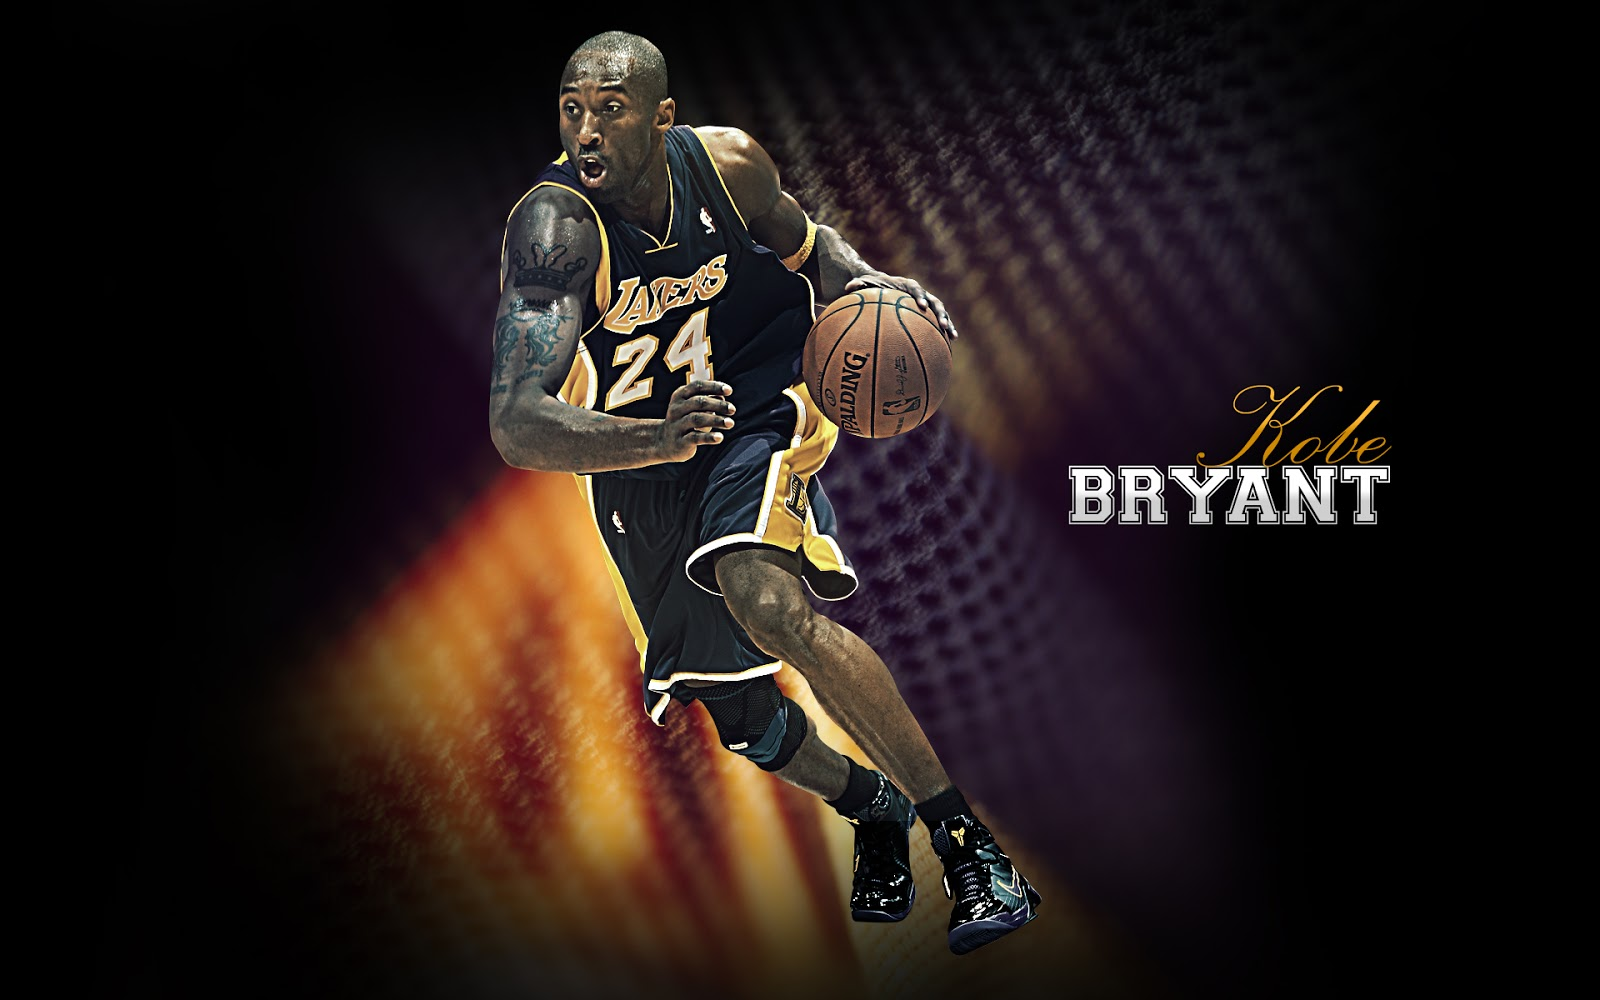 kobe bryant nice wallpapers - photo #10